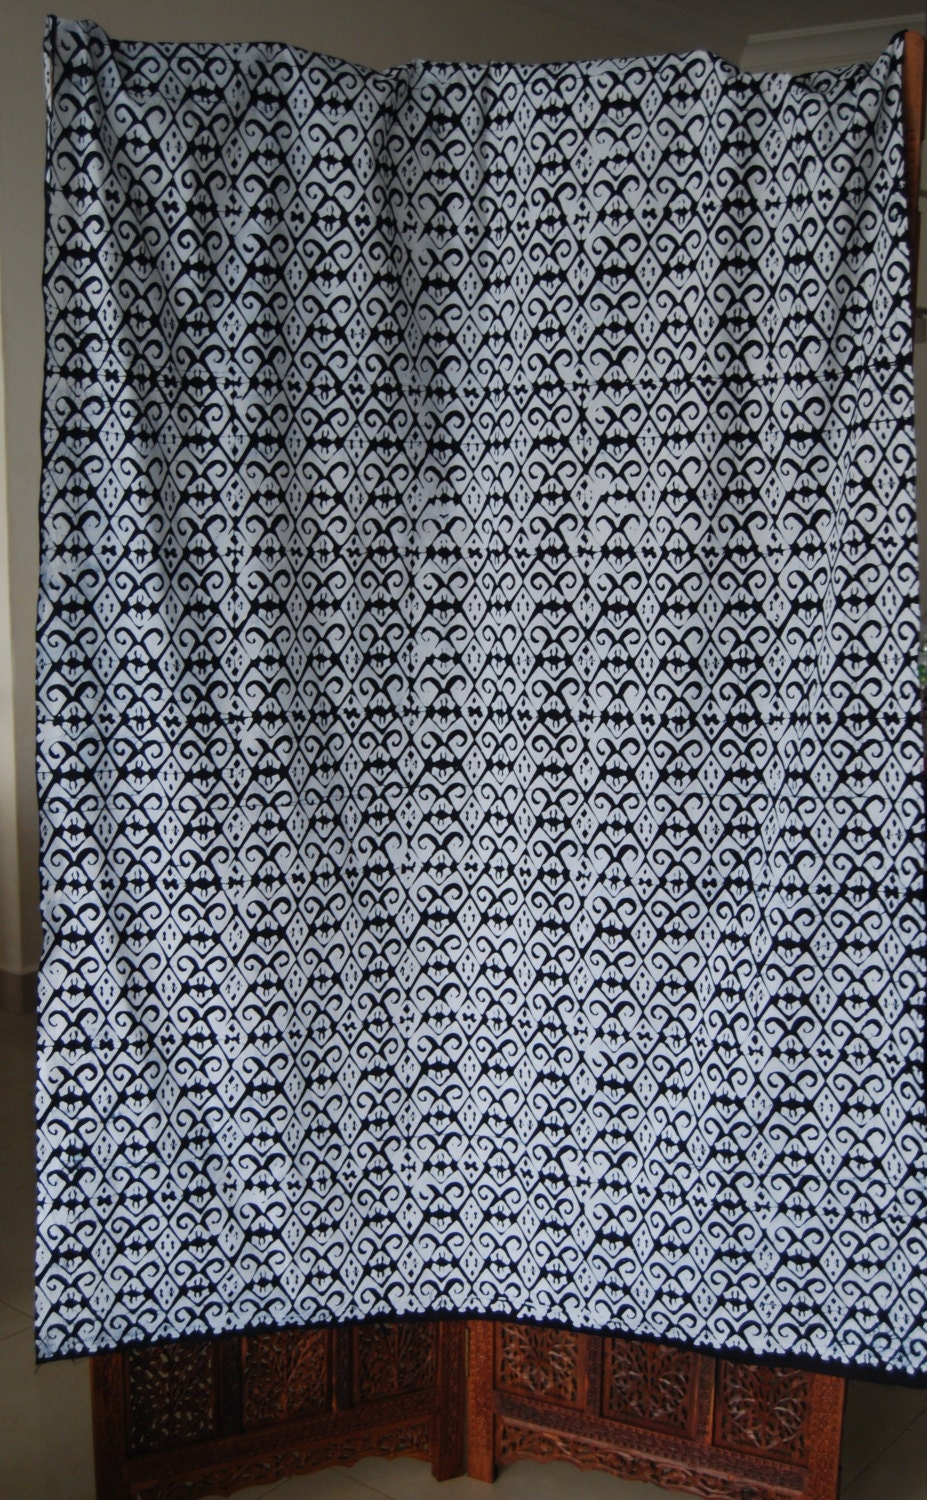 malaysian black and white batik fabric hand printed from